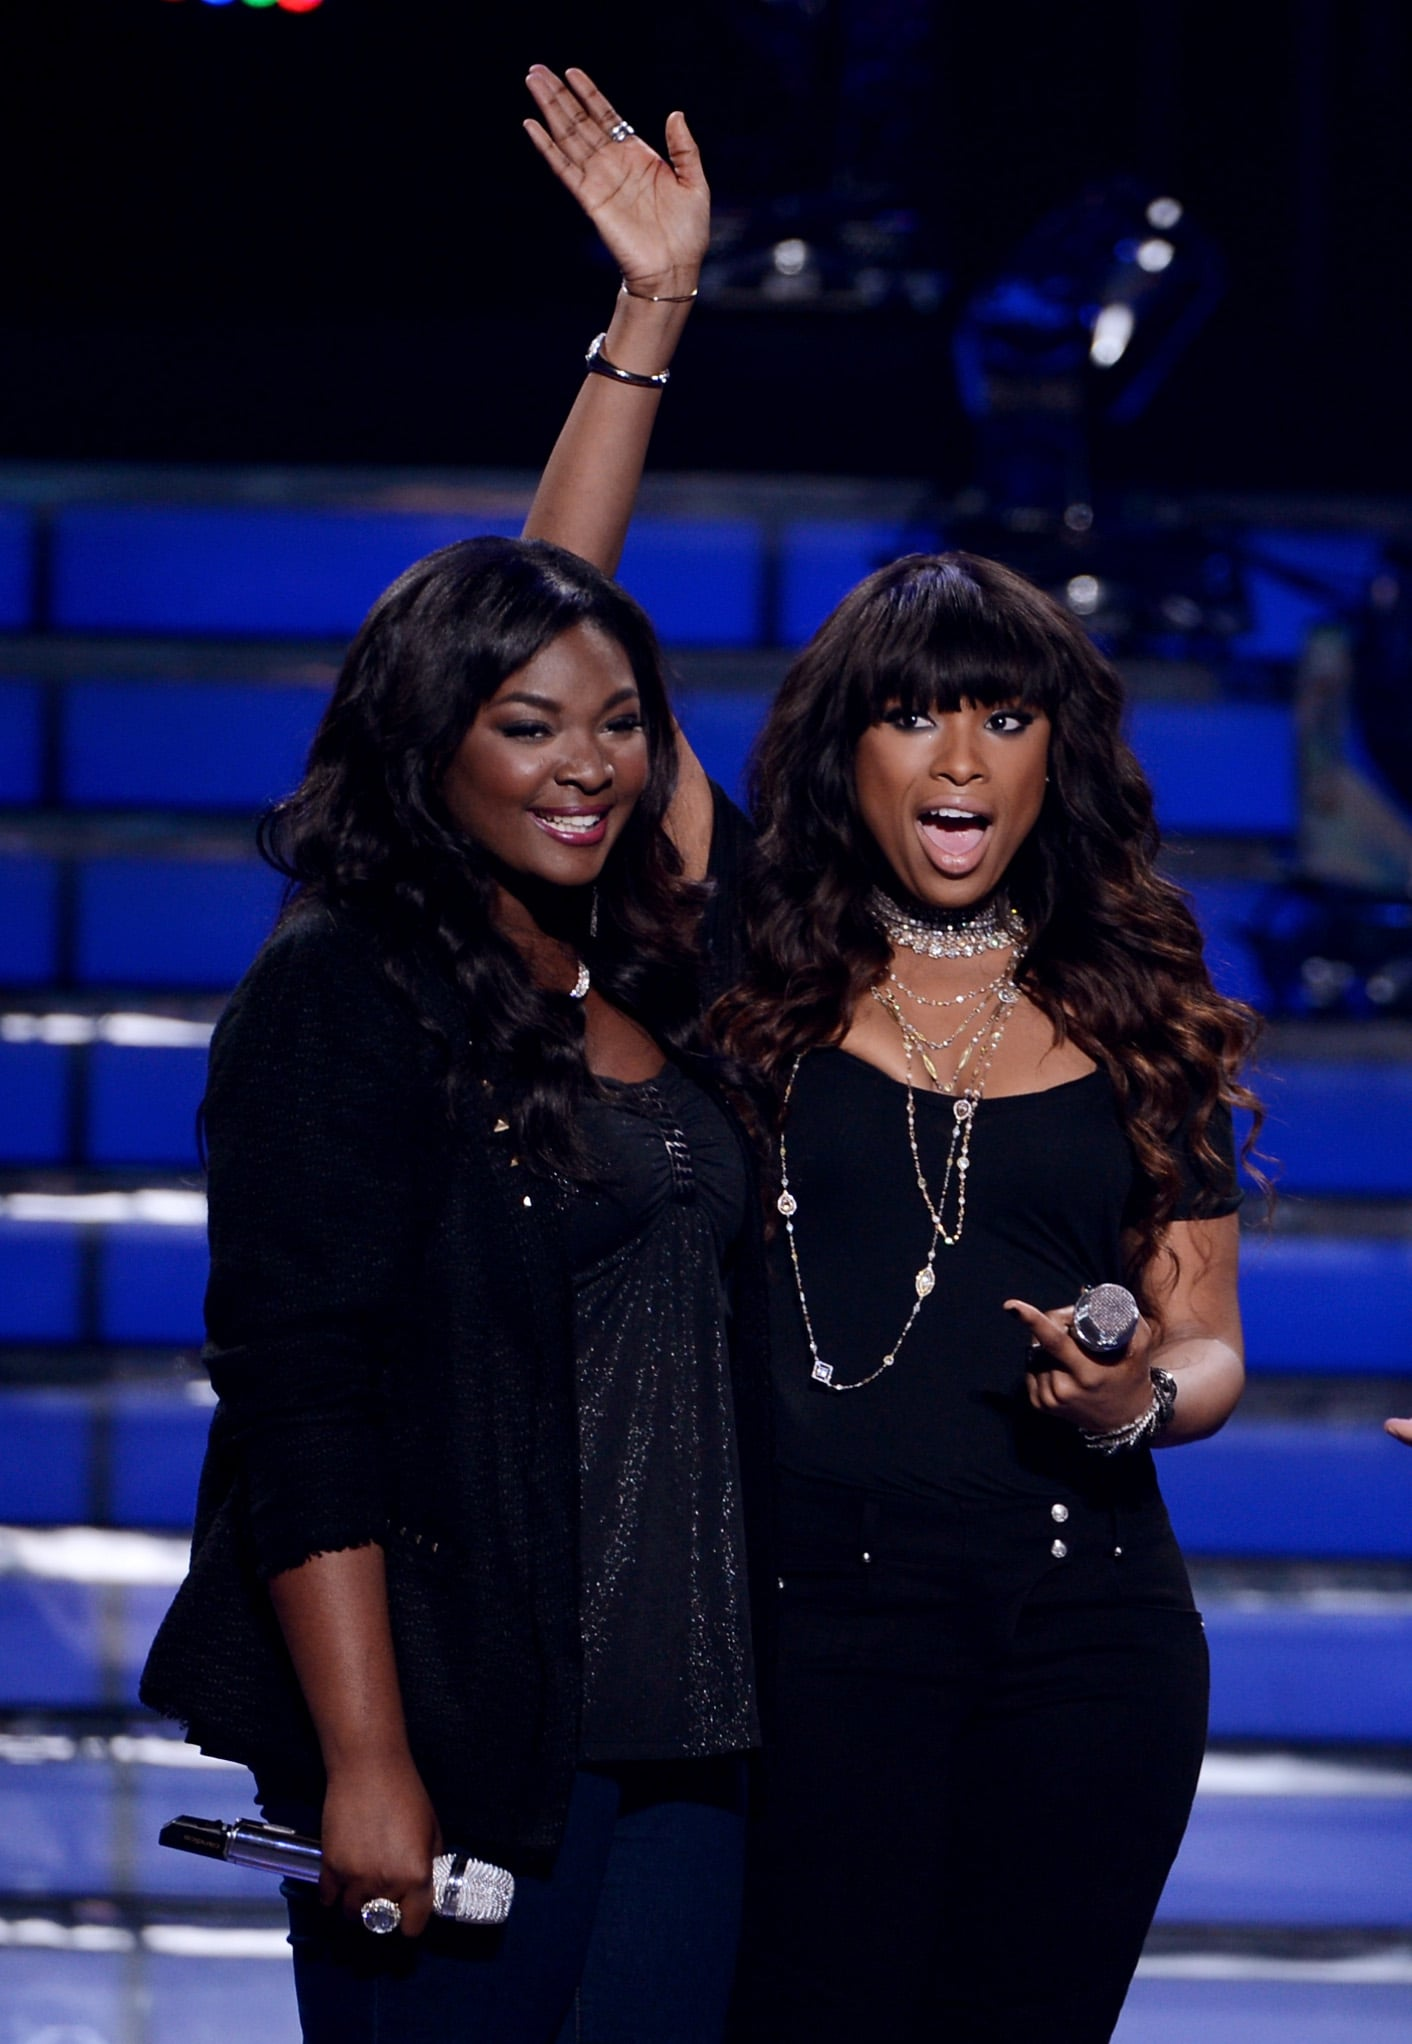 Candice Glover performed with Jennifer Hudson.